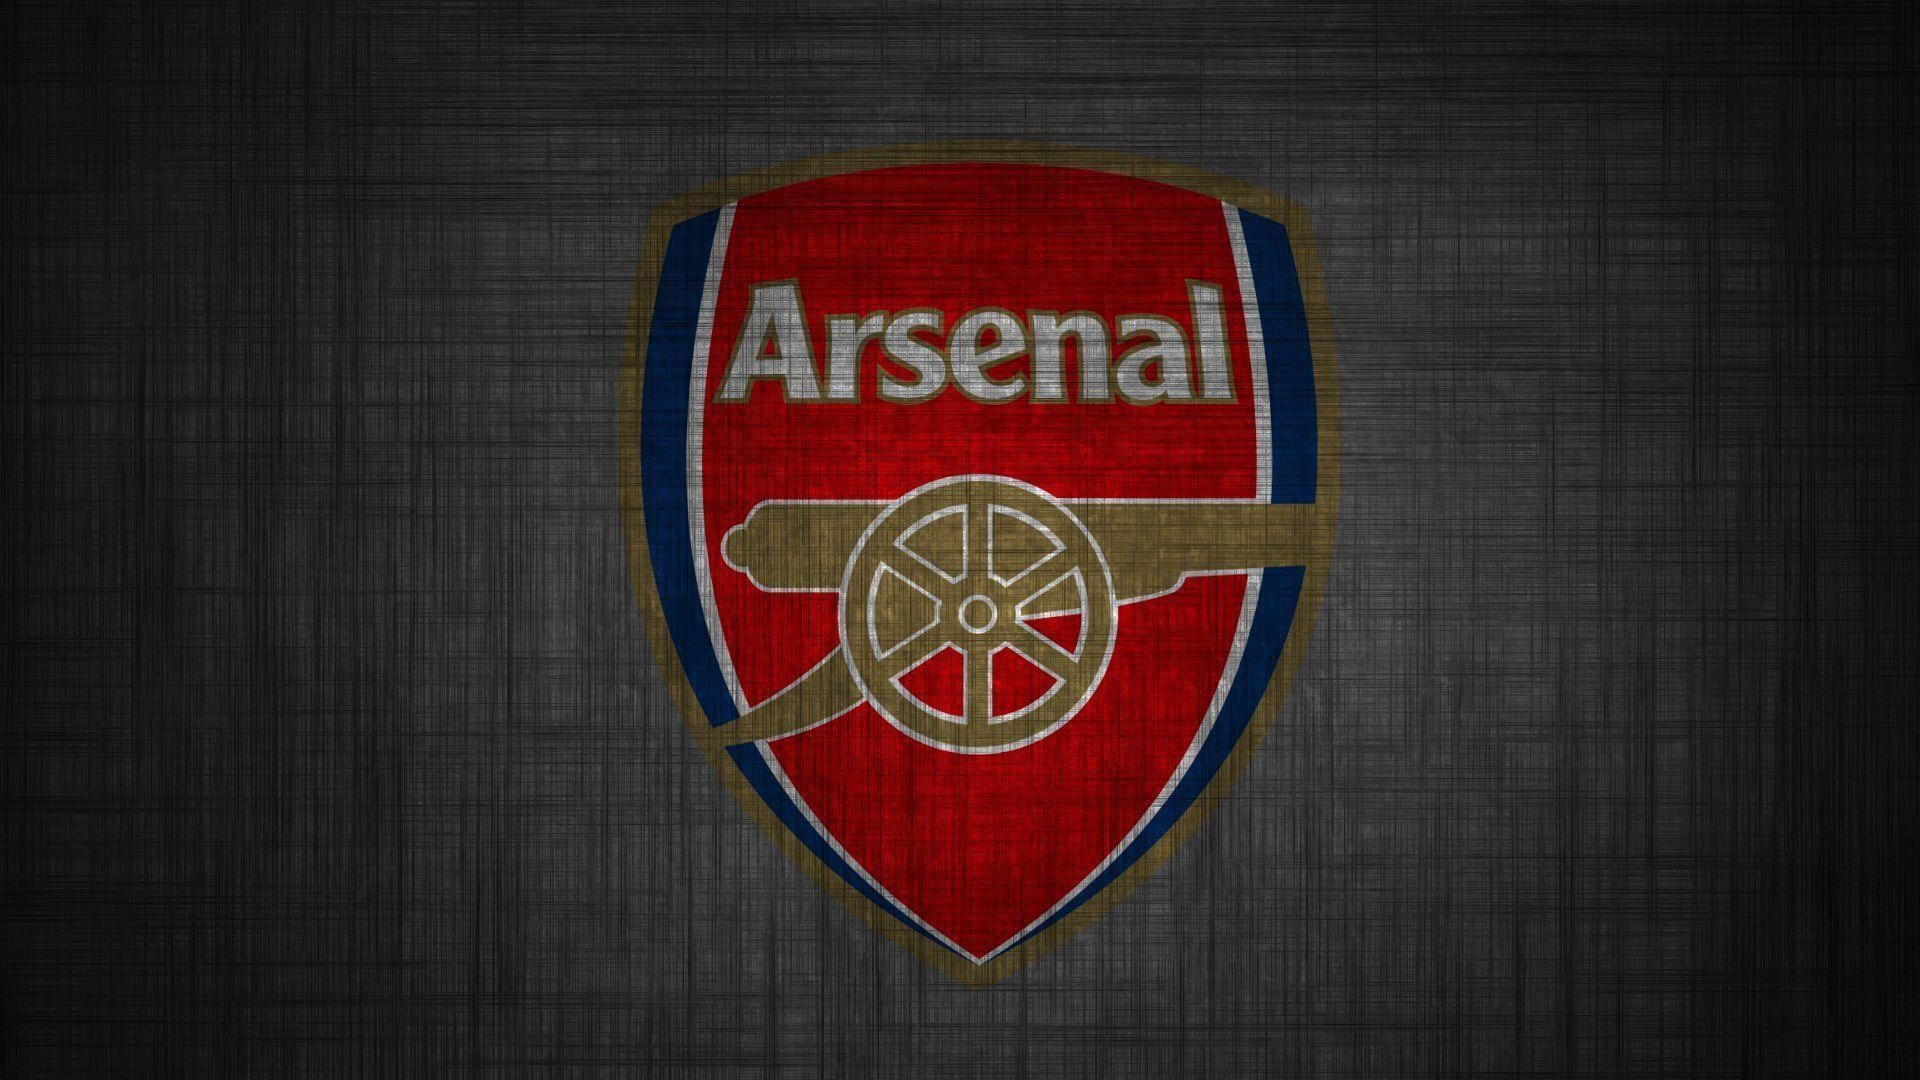 Arsenal Fc Wallpaper Desktop